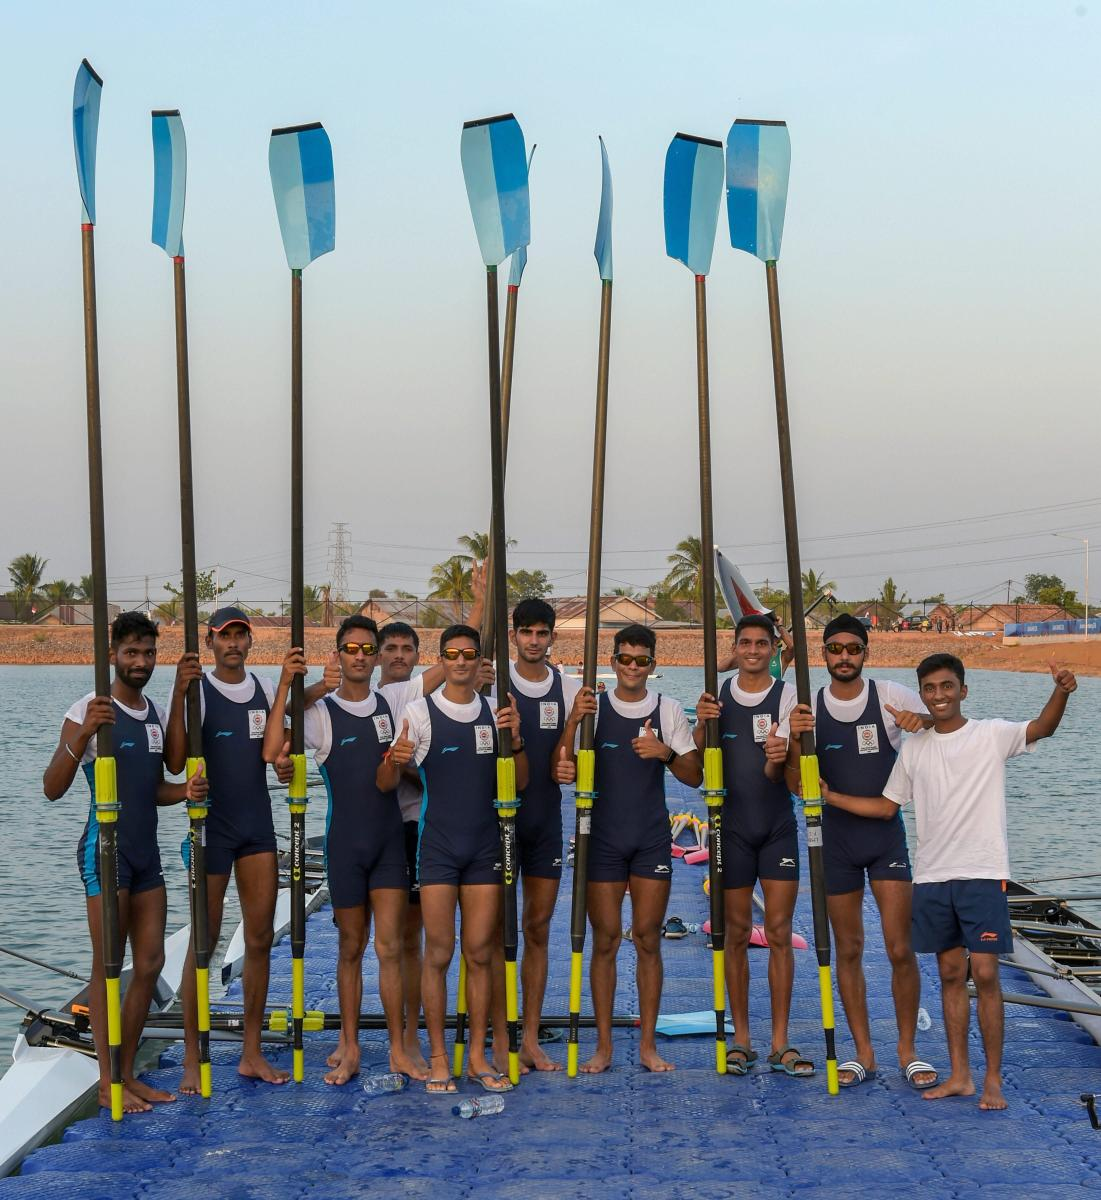 Indian rowers are expected to add significantly to India's medal haul in the Asian Games. PTI